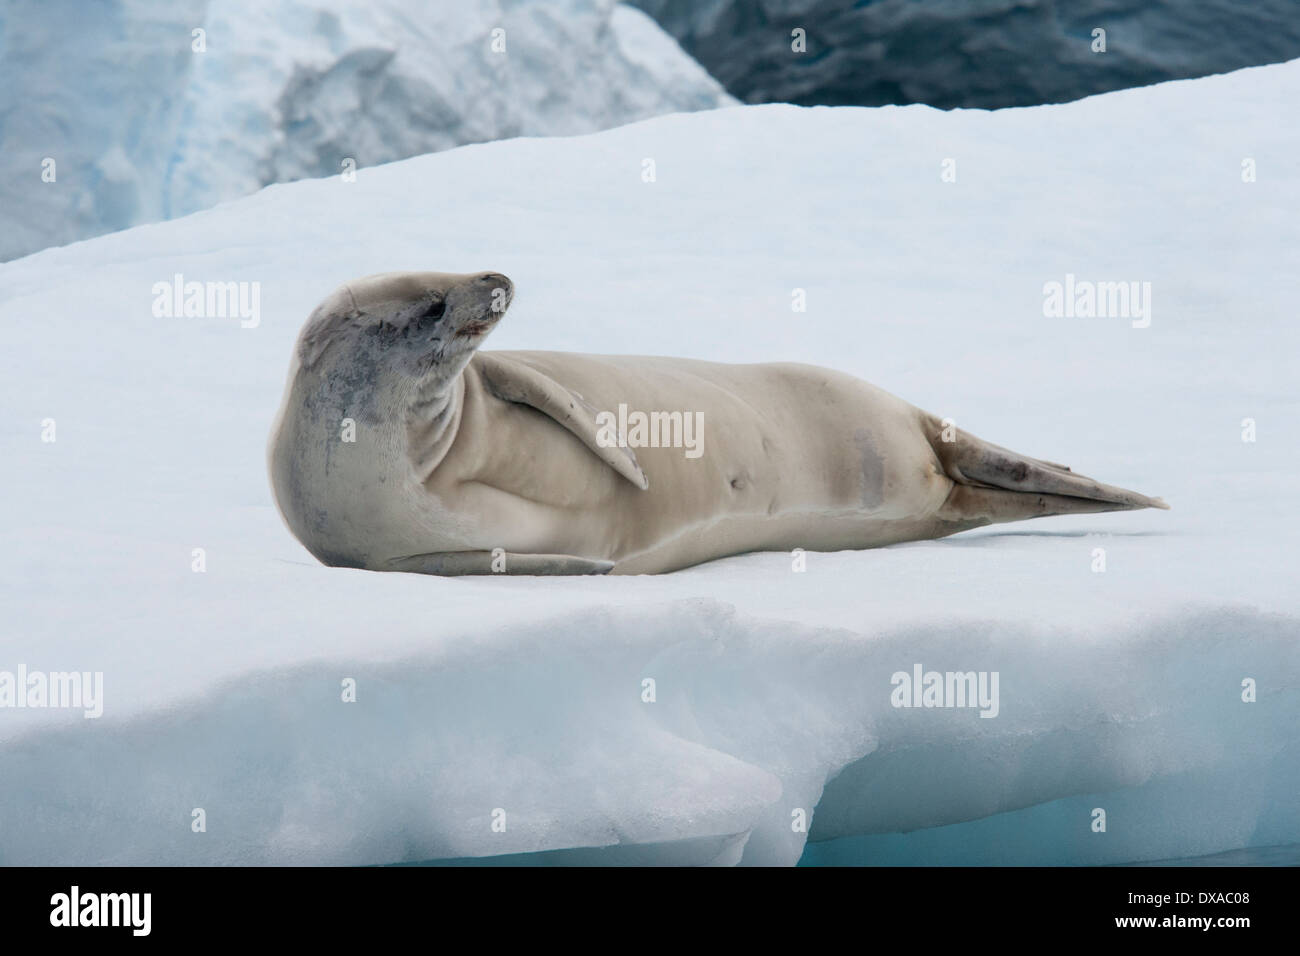 Crabeater seal, Lobodon carcinophagus, resting on an iceberg with glacier in background. Antarctic Peninsula. - Stock Image